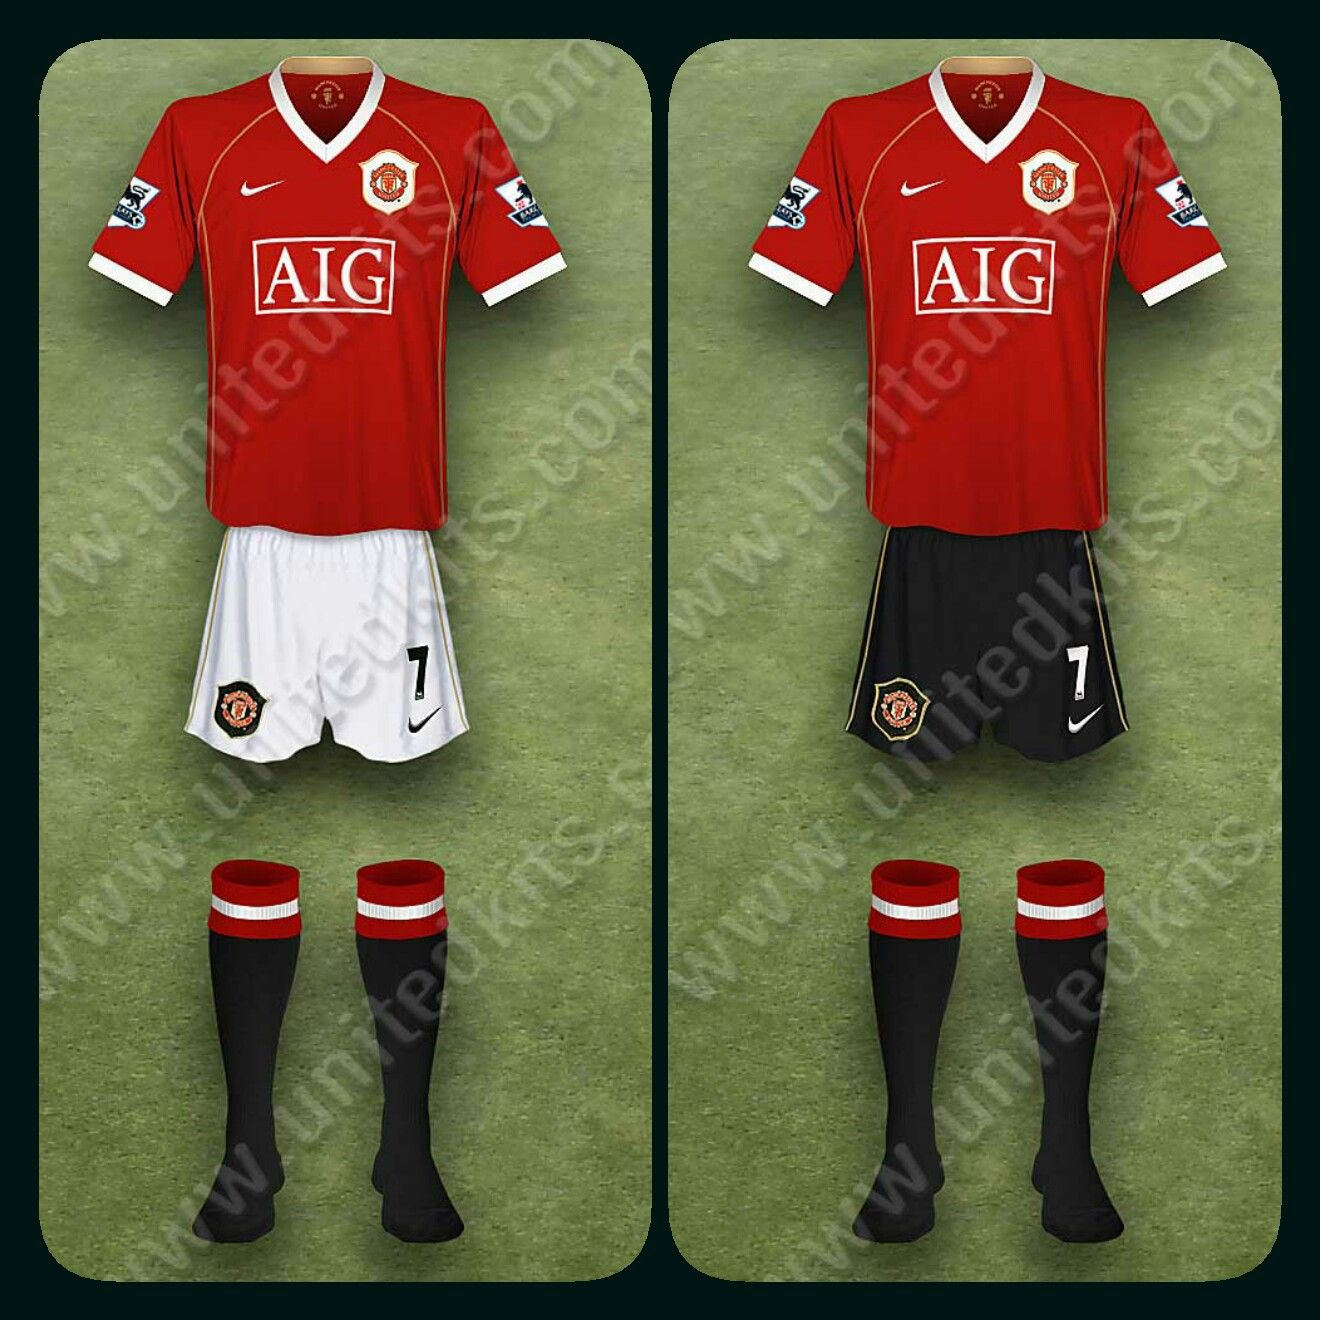 e49580c892f Man Utd home kit for 2006-07 (one with black shorts).